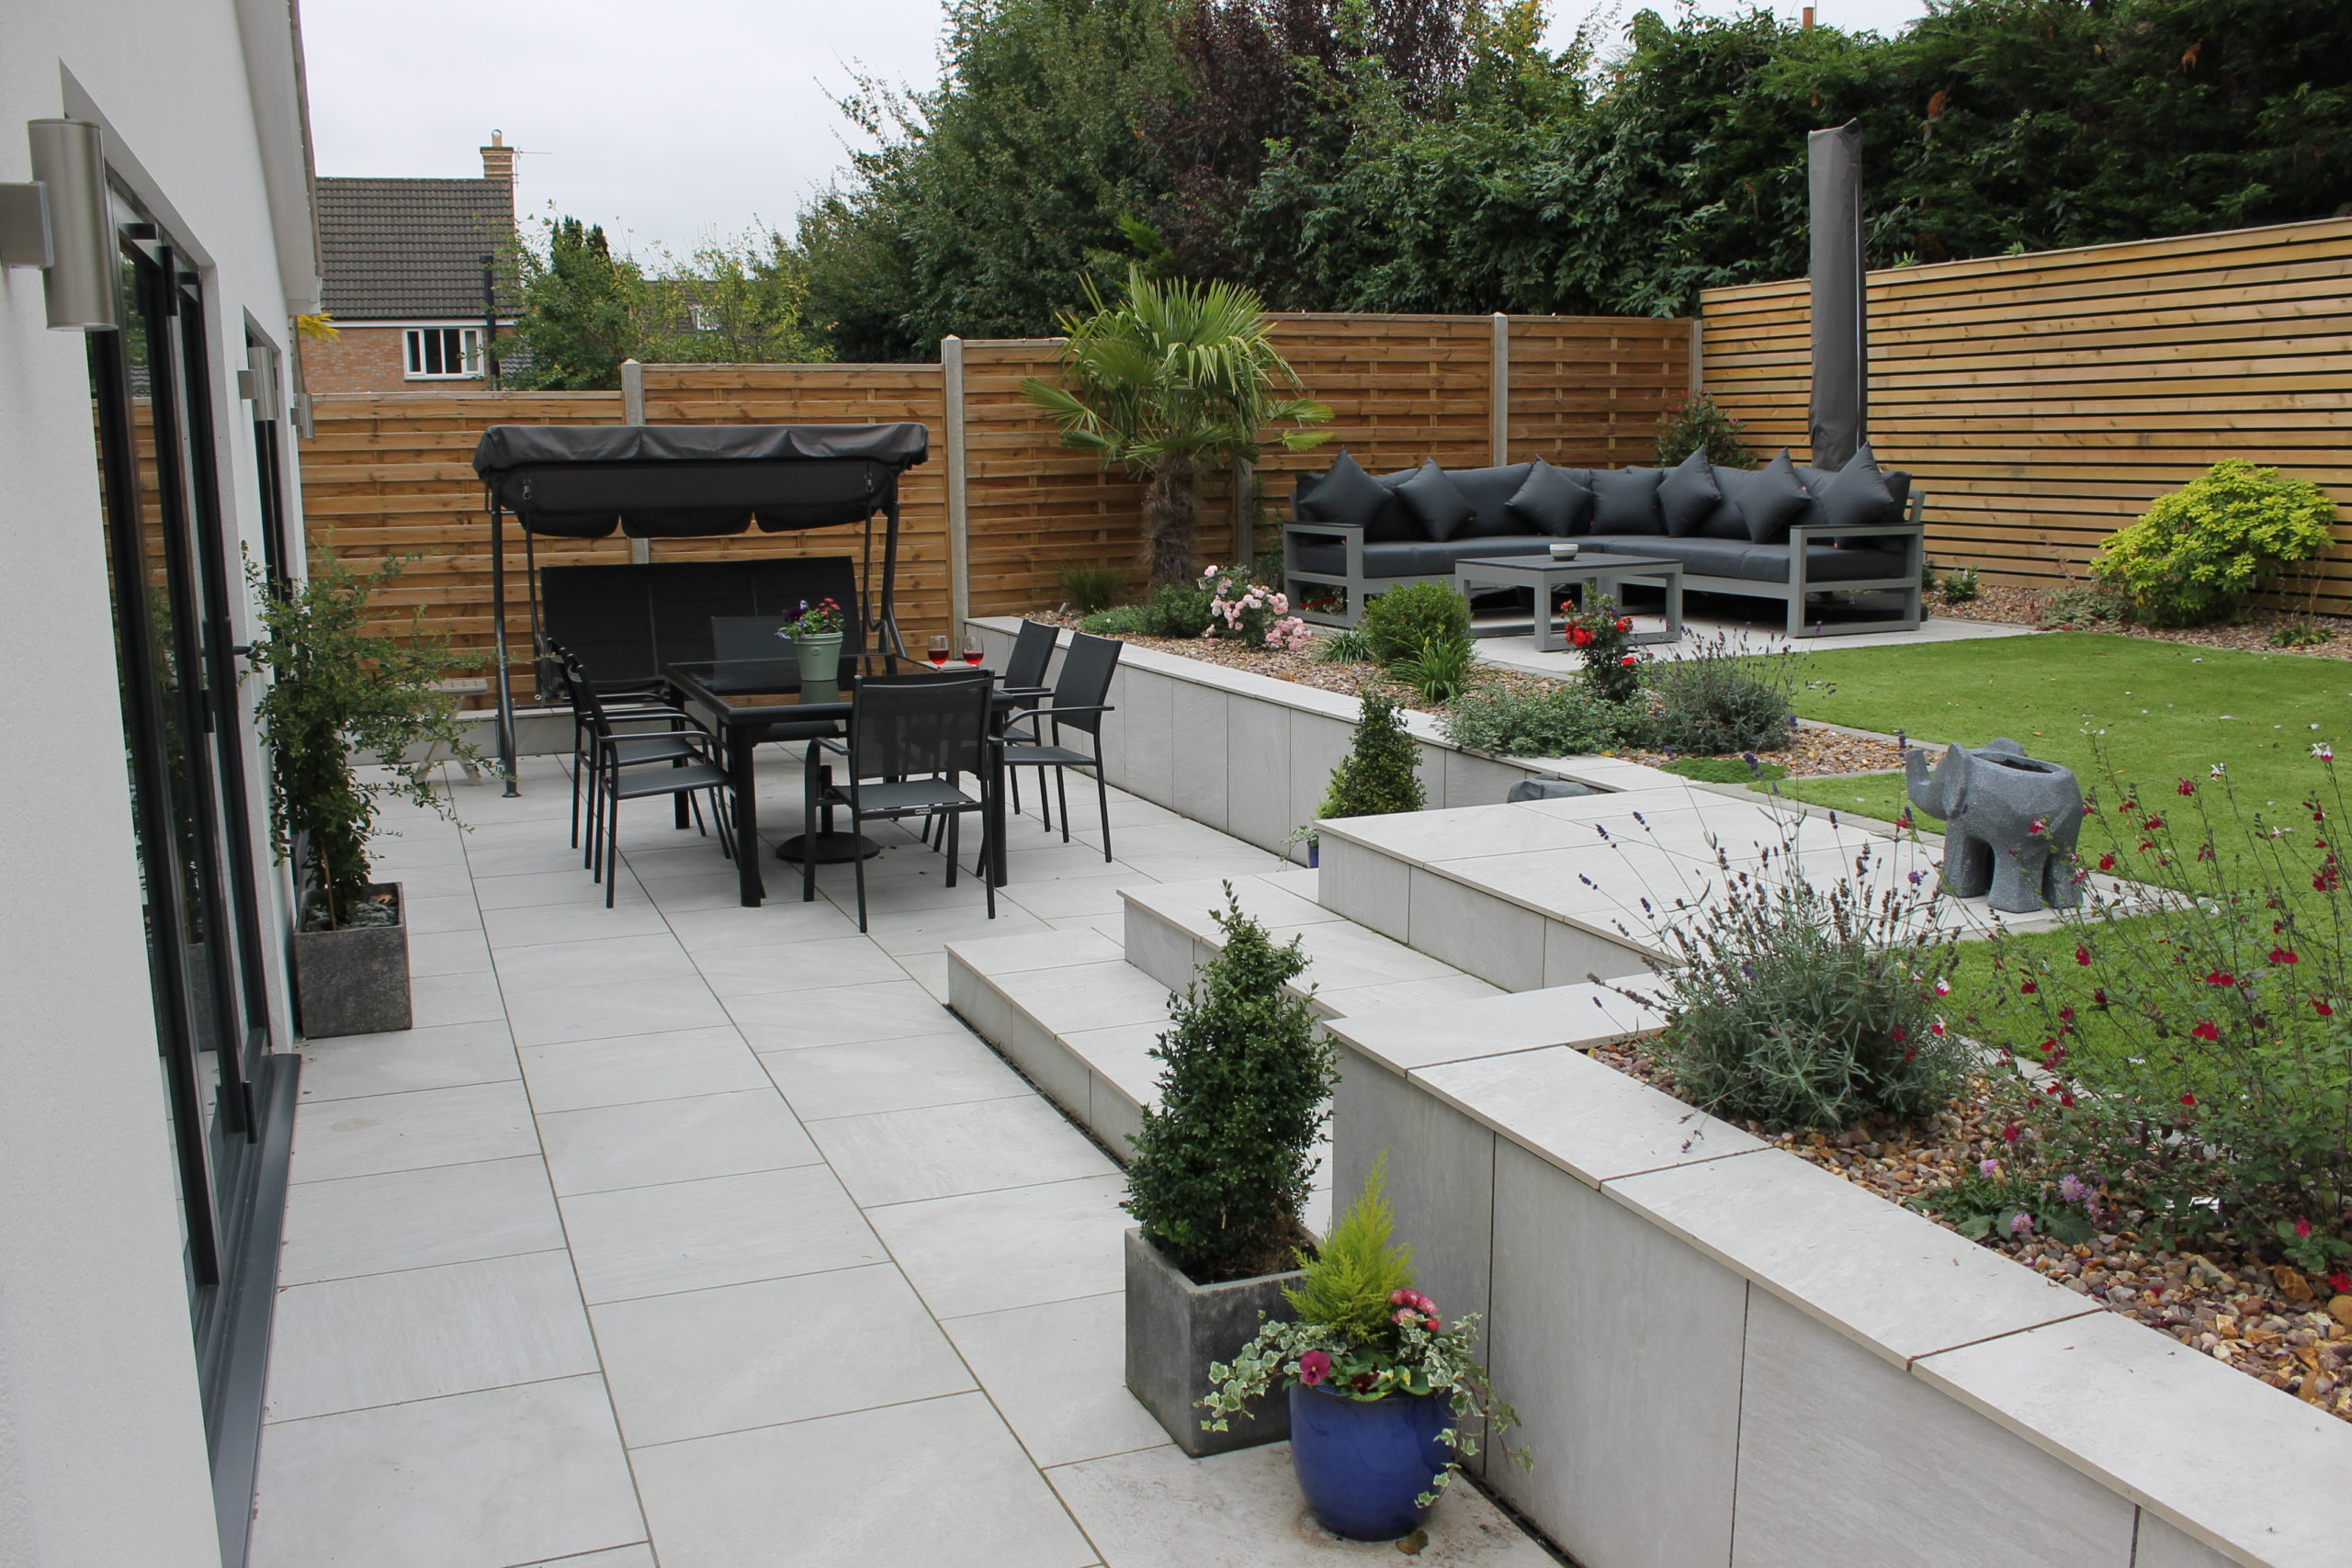 Porcelain paved garden with black table chairs and couch